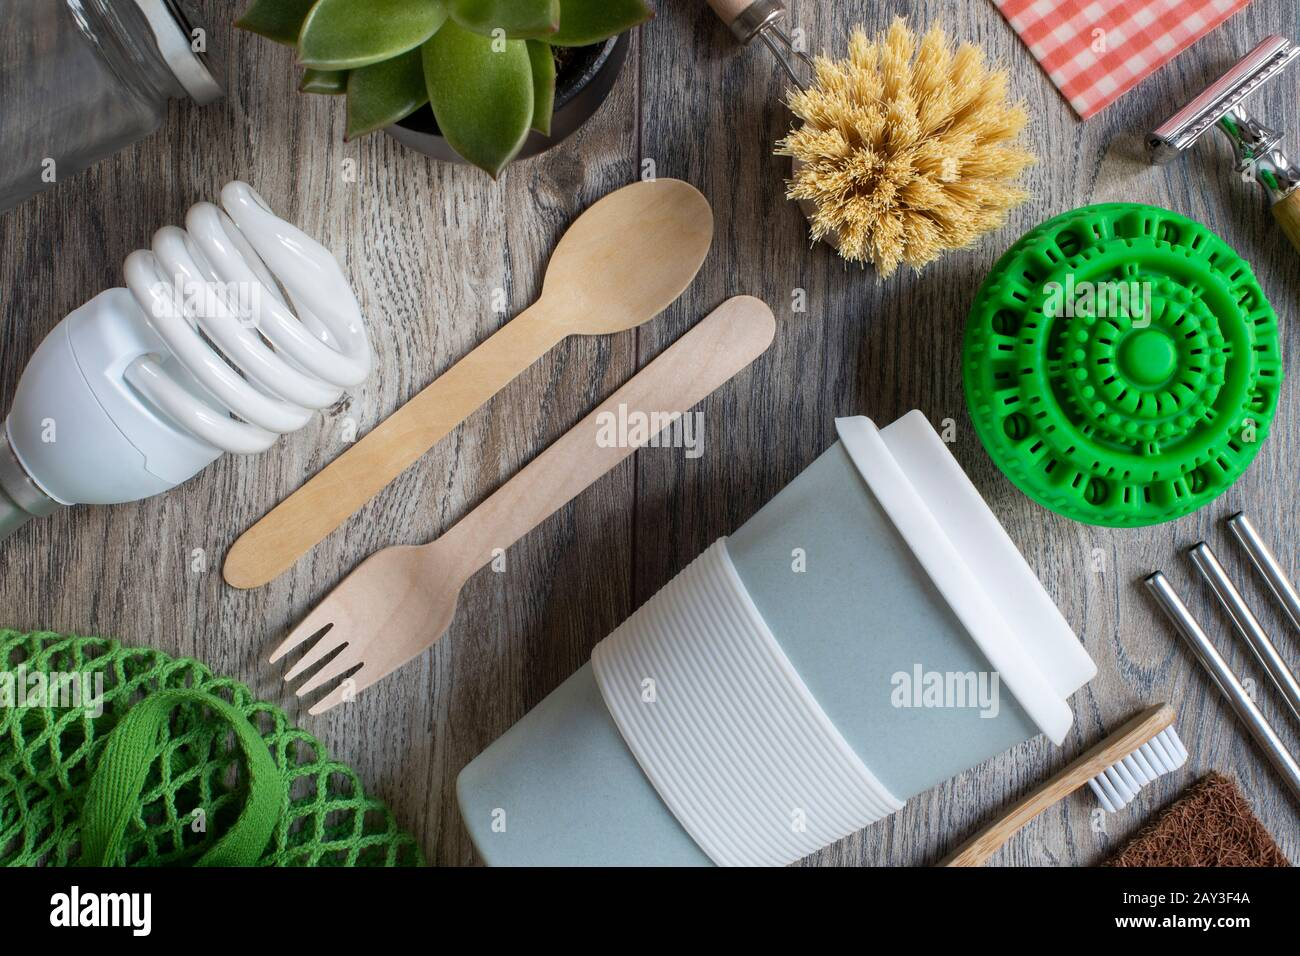 Flat Lay Shot Of Plastic Free Eco Products With Reusable Or Sustainable Zero Waste Products On Wooden Background With Metal Staws Wooden Cutlery Paper Stock Photo